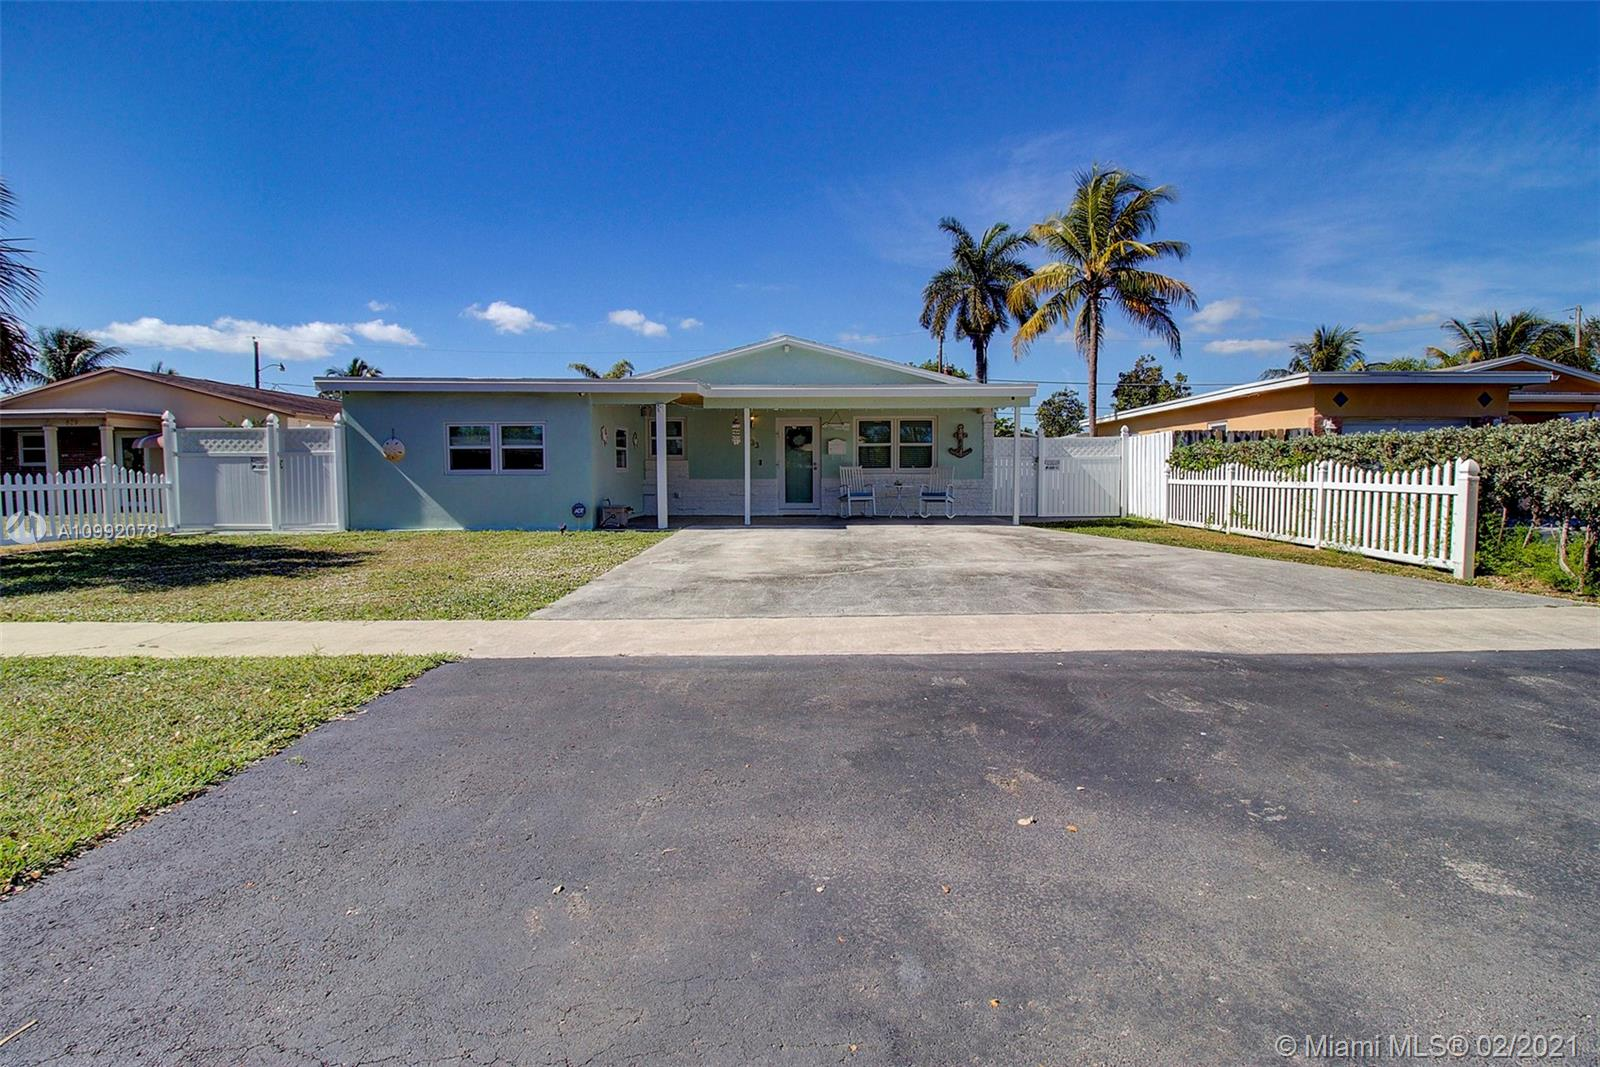 Completely remodeled 3 bed / 2 bath single family home with an in-ground pool in Melaleuca Gardens, Dania Beach. The home features a large covered front porch and a covered terrace in the backyard. New roof in 2020. Remodeled kitchen with stainless steel appliances. Remodeled master bathroom and a luxurious master closet was added as well.  The home comes with a 360 degree video security system and features 3-ply PGT hurricane impact windows and doors. Reinforced ceiling and windows makes the home completely sound-proof to outside noise. There is also ample space on either side of the house for recreational vehicles and it includes a 20x10 storage shed. Community features a private boat ramp that leads to the Dania cut canal and a children's park across from the home.